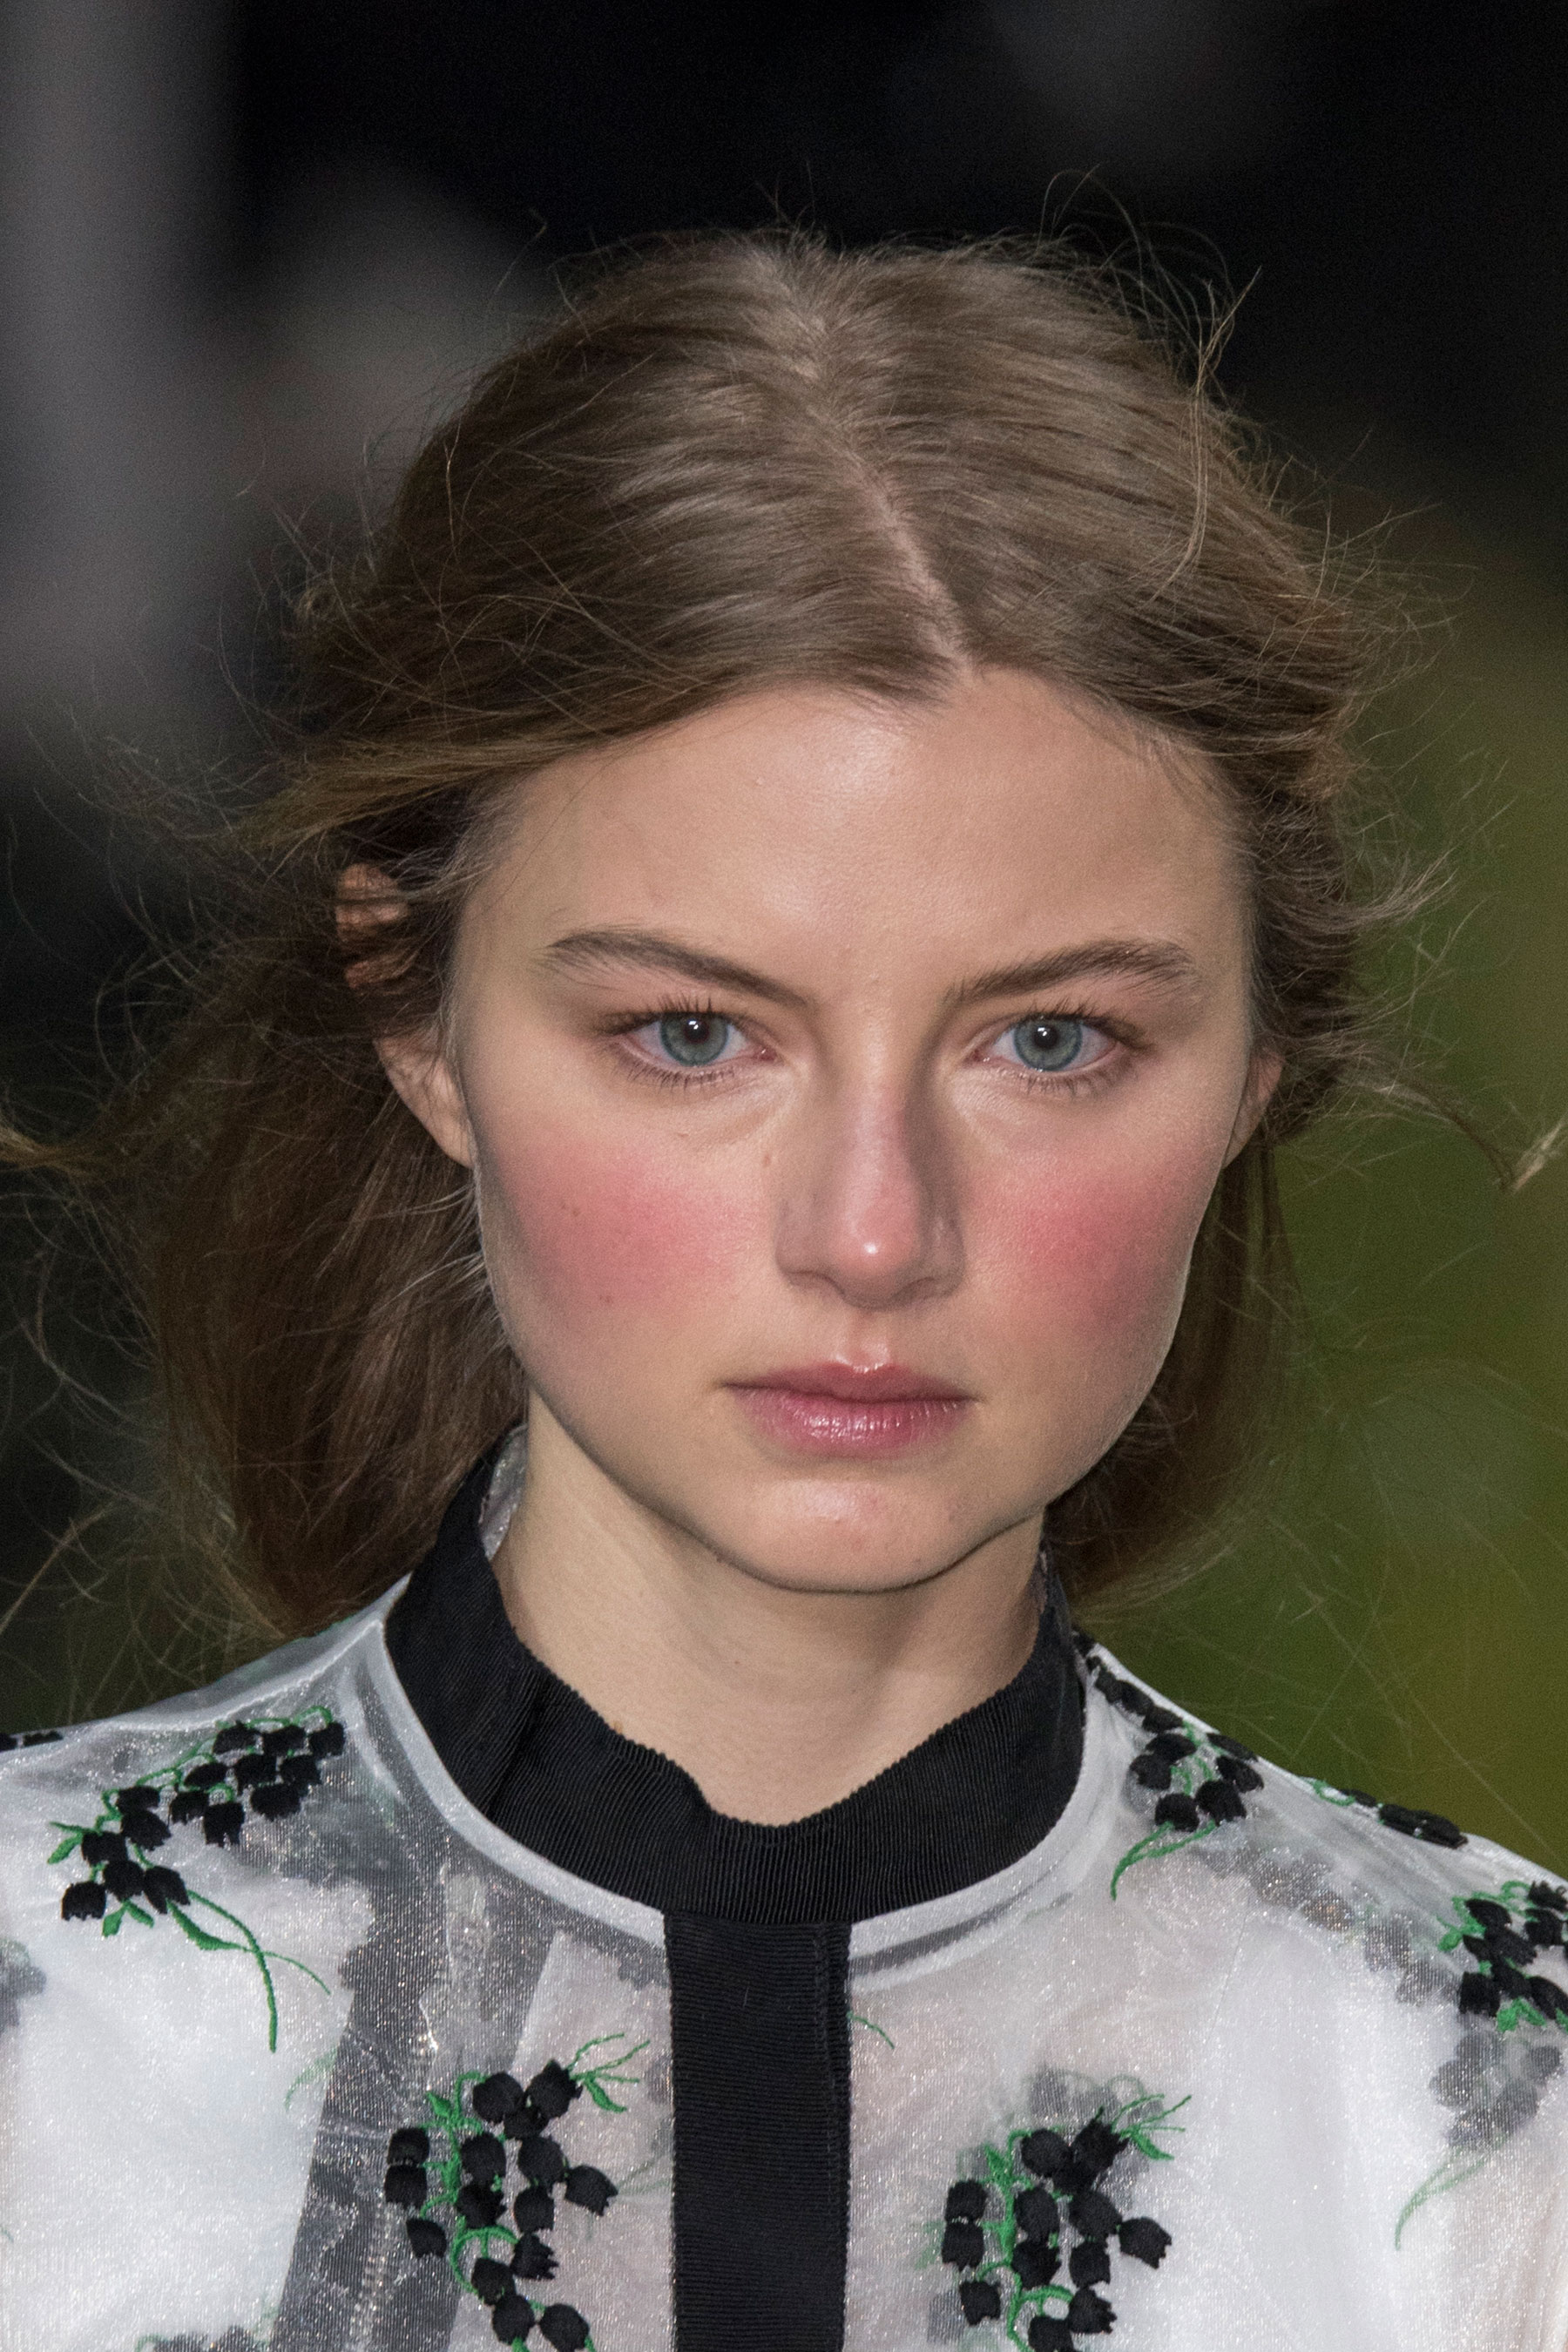 Moncler-Gamme-Rouge-spring-2016-runway-beauty-fashion-show-the-impression-35